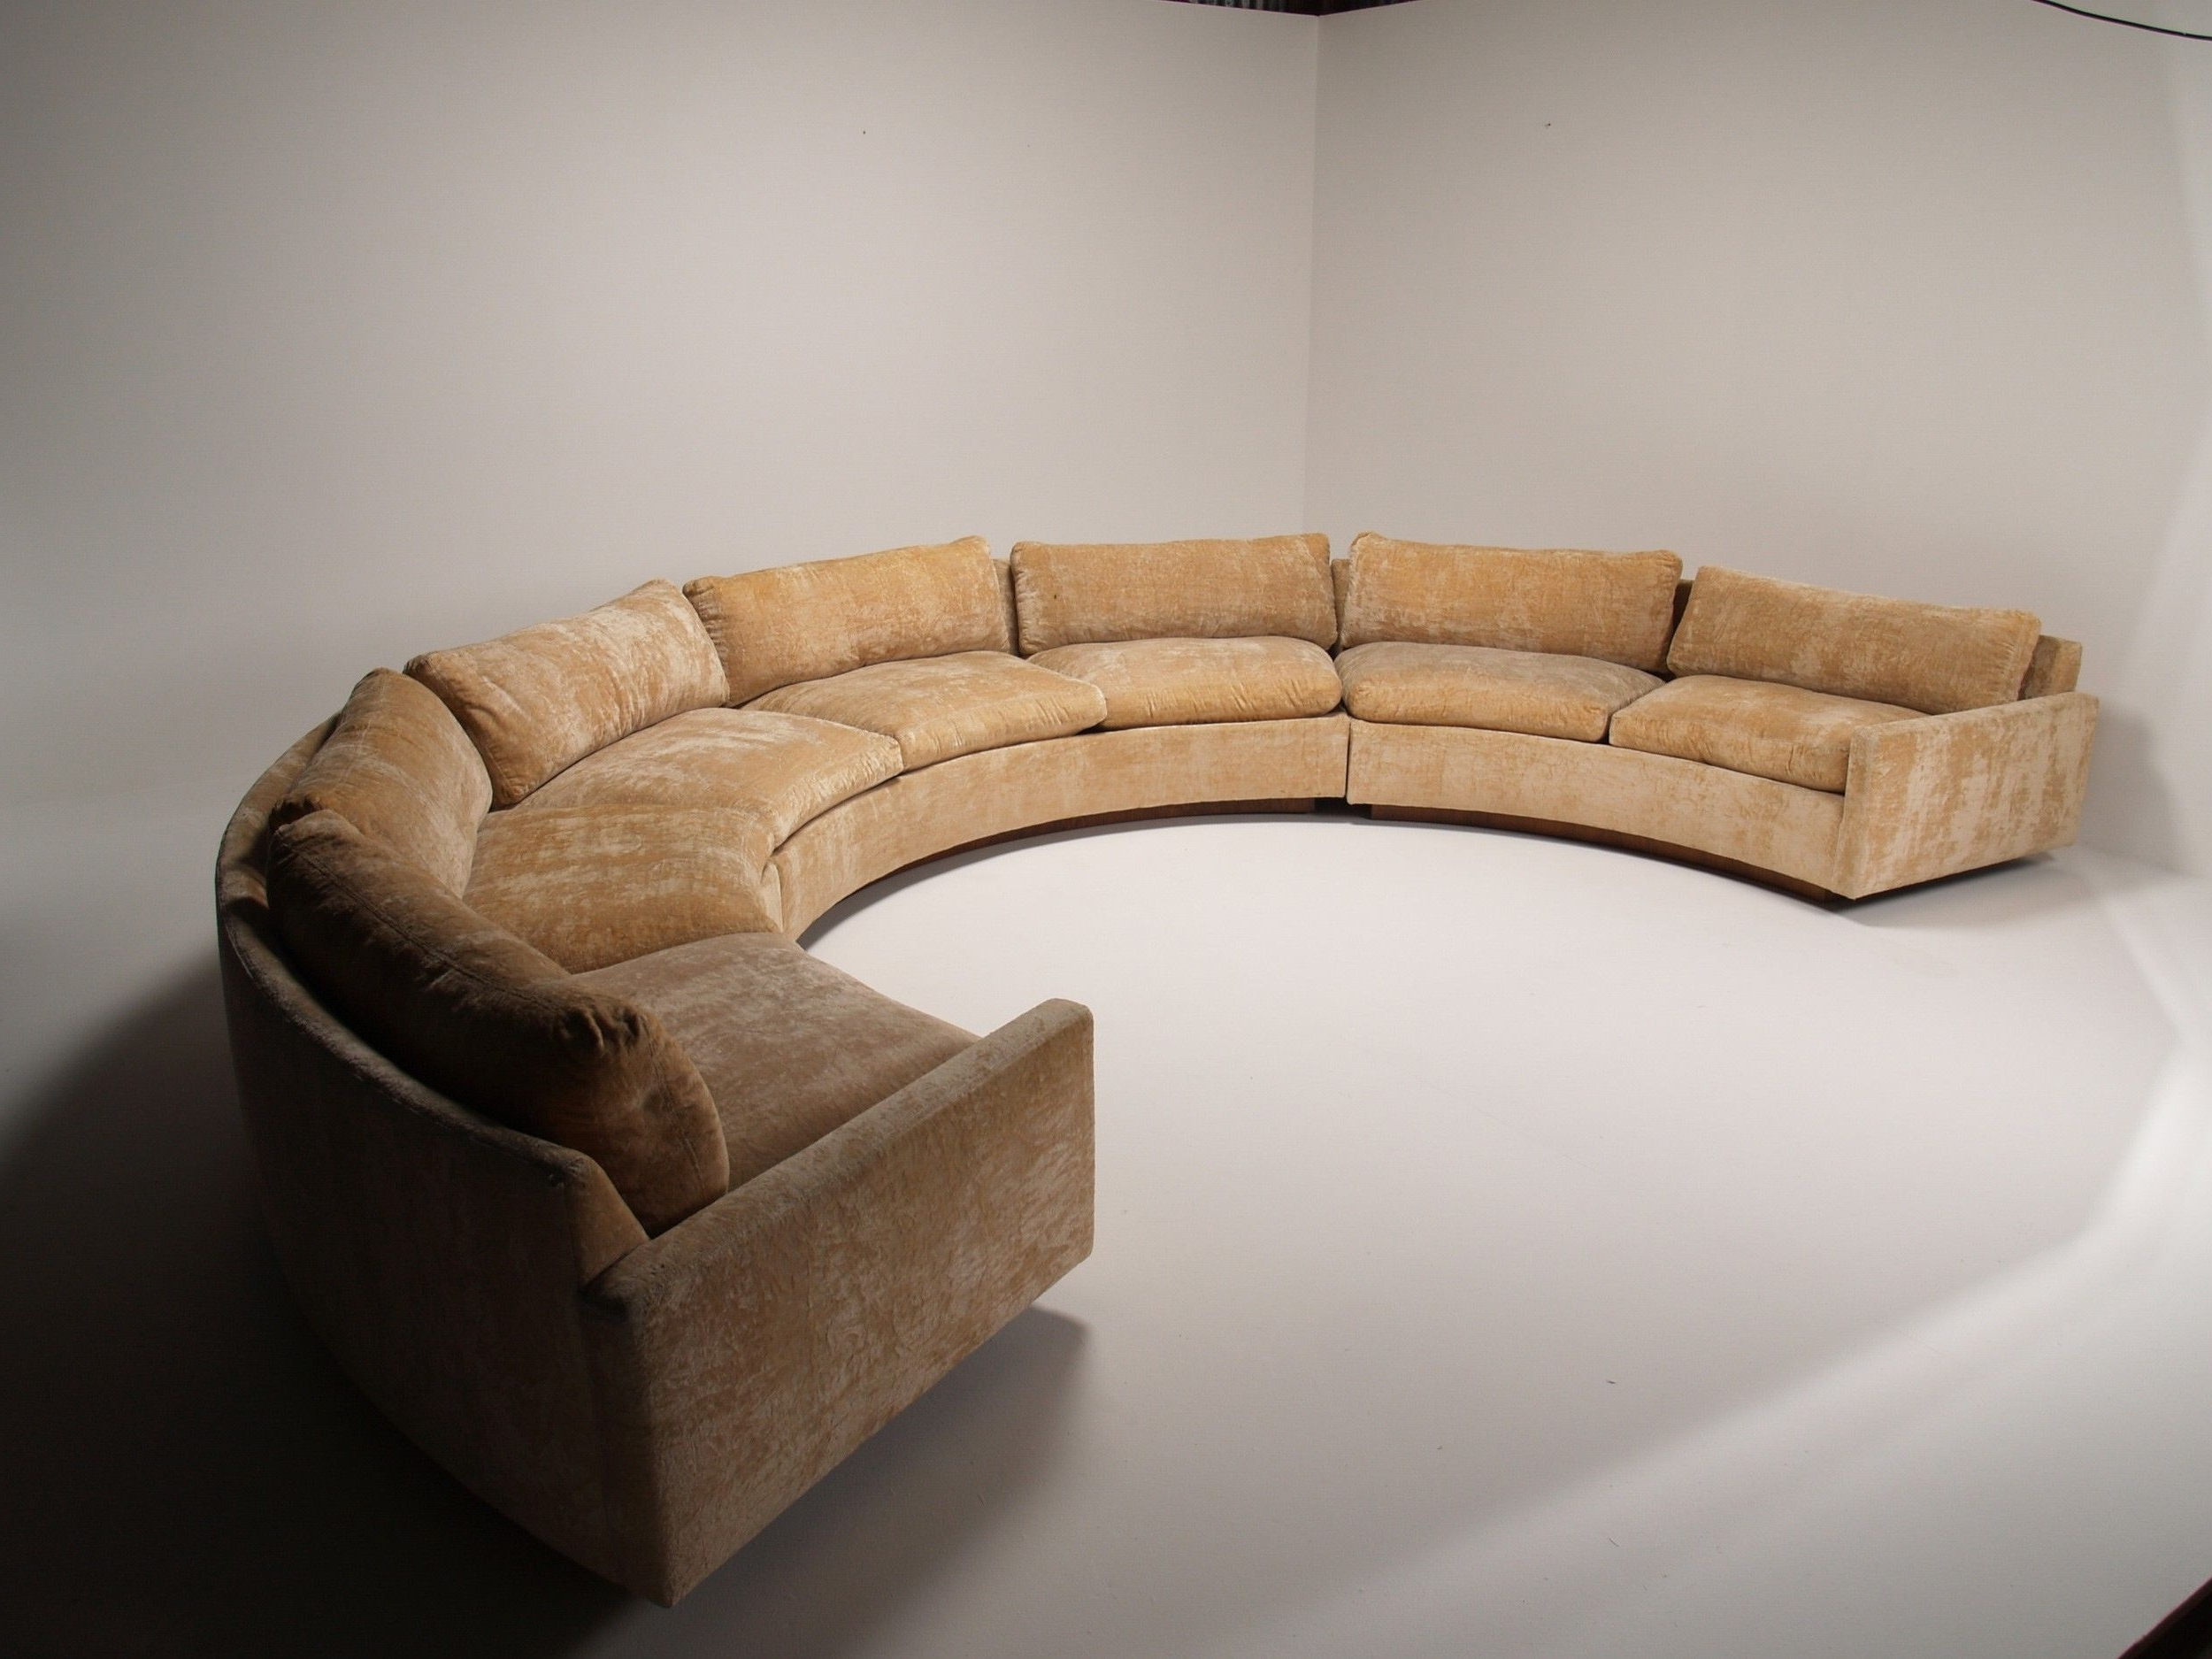 Popular Grey Velvet Curved Couch Without Cushions As Well As In Pertaining To Well Known Semicircular Sofas (View 12 of 20)